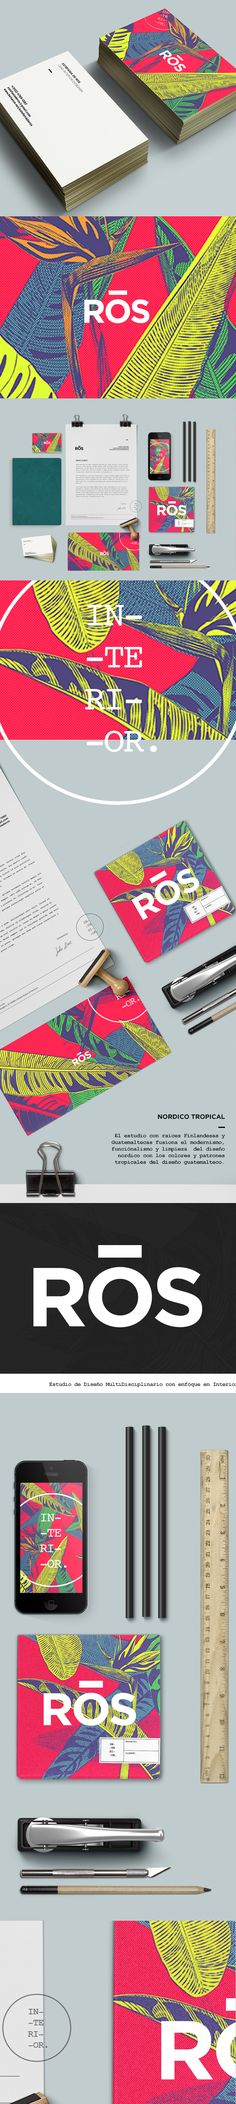 """Branding Concept for Ros Interior Design, Ros is a an Interior Design Studio based in Guatemala lead by Estefania de Ros and Gustavo Quintana, The Studio has a unique Style that se defines as """"Nordico Tropical"""" a fusion between the Modernism and Functiona…"""